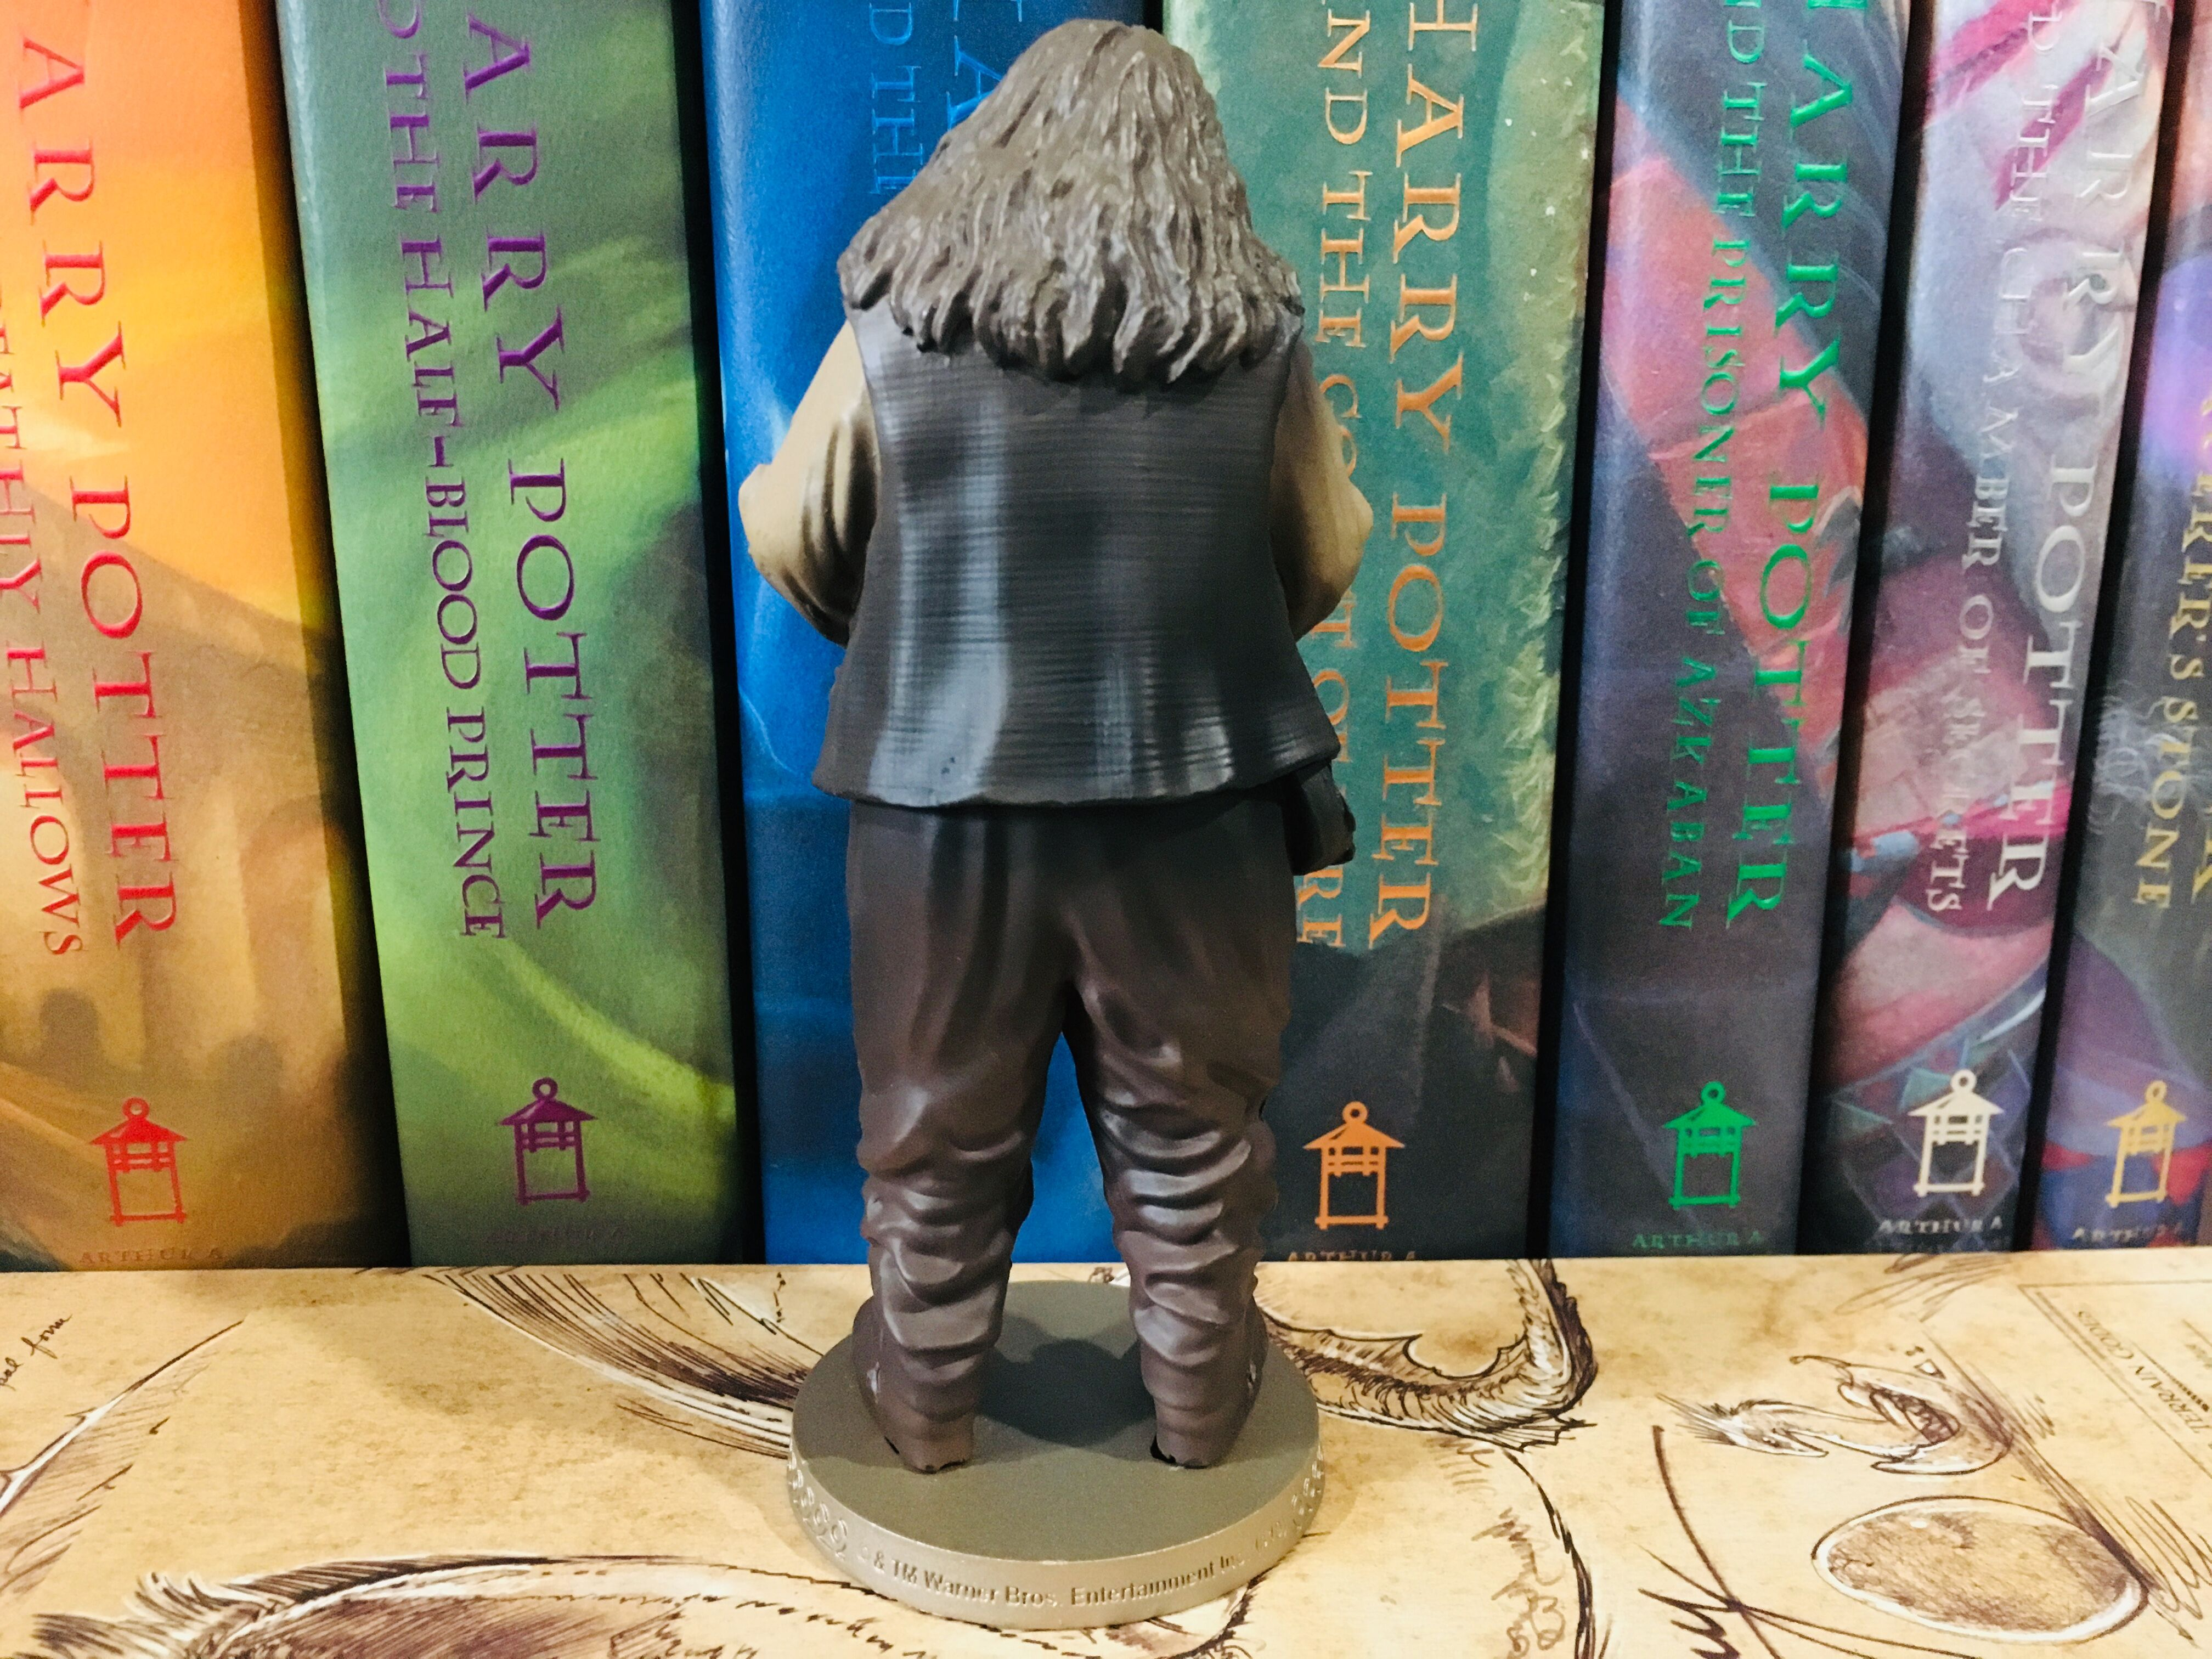 From the back, one can see Hagrid's wrinkled pants and bushy hair.